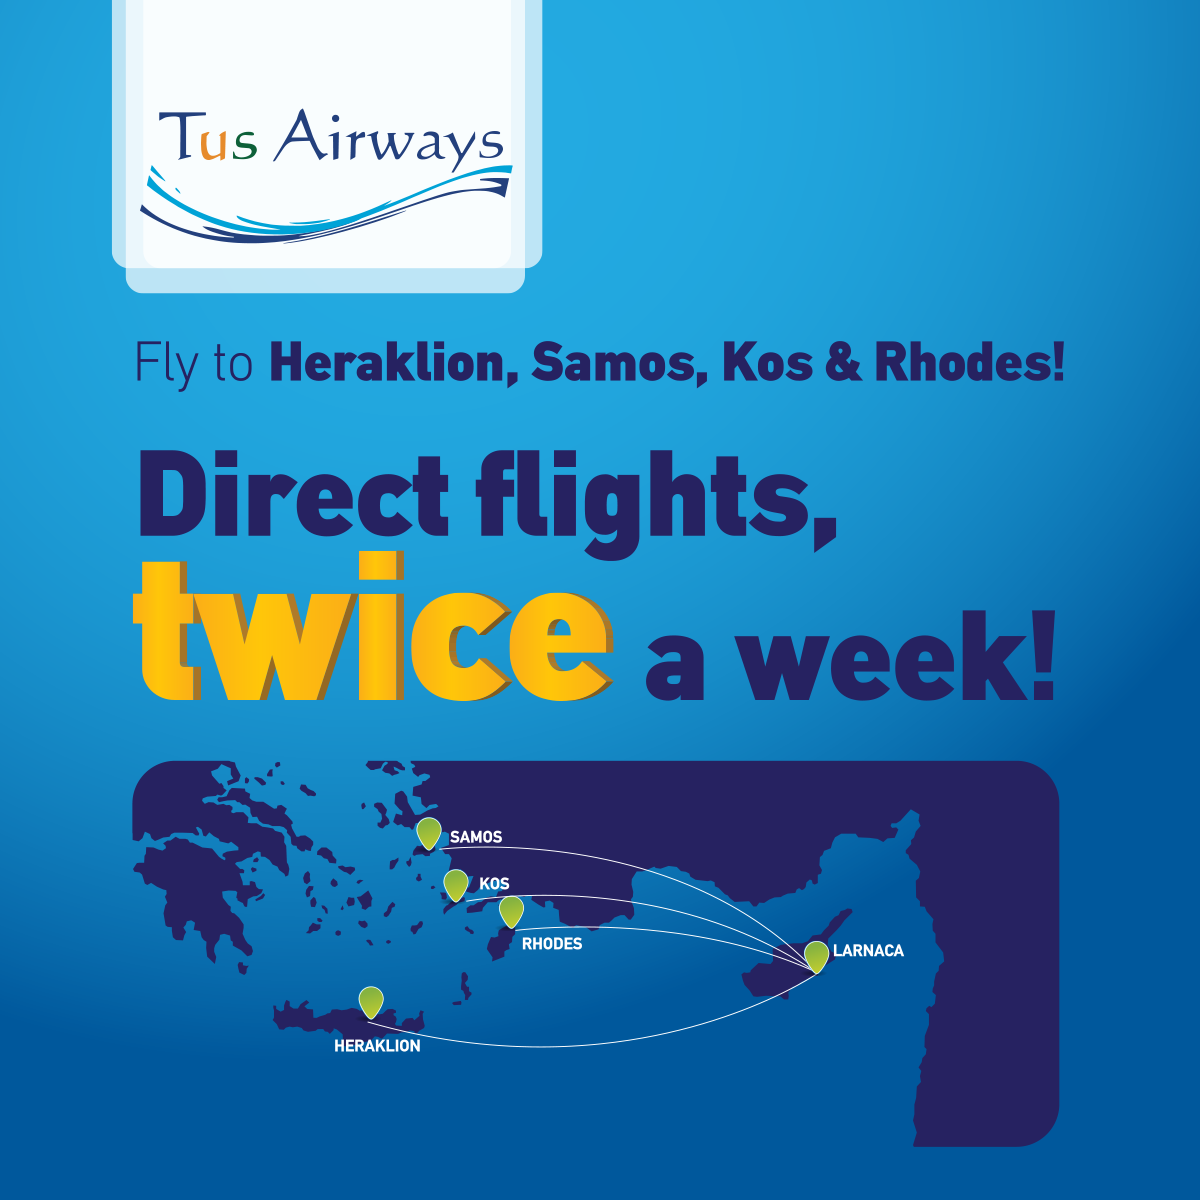 Special fares to Greece